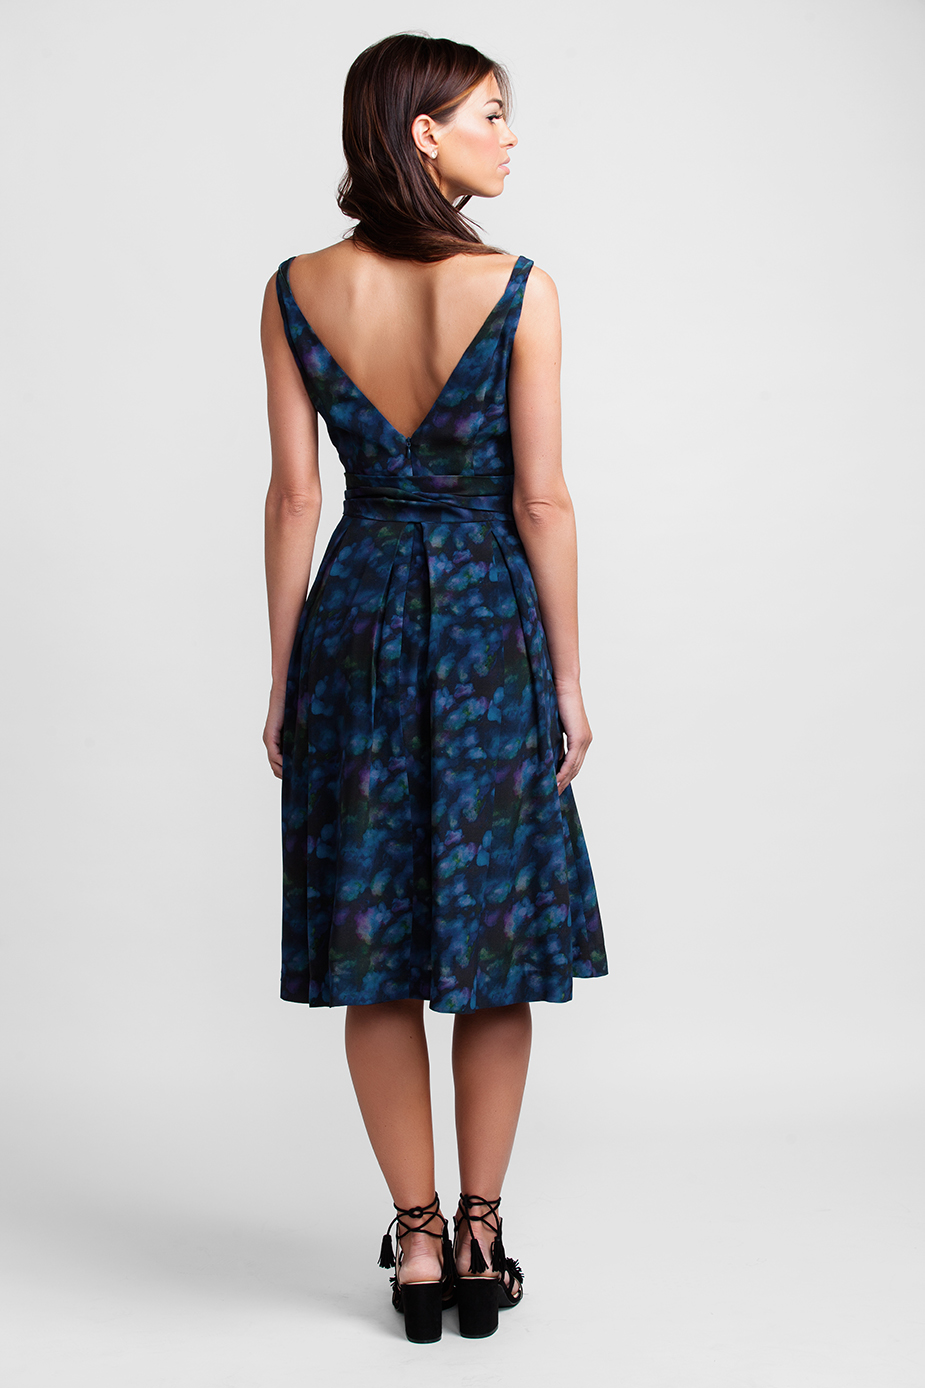 b1abed5ab86 Navy Cloud Garden Party Dress - Suzy Perette New York